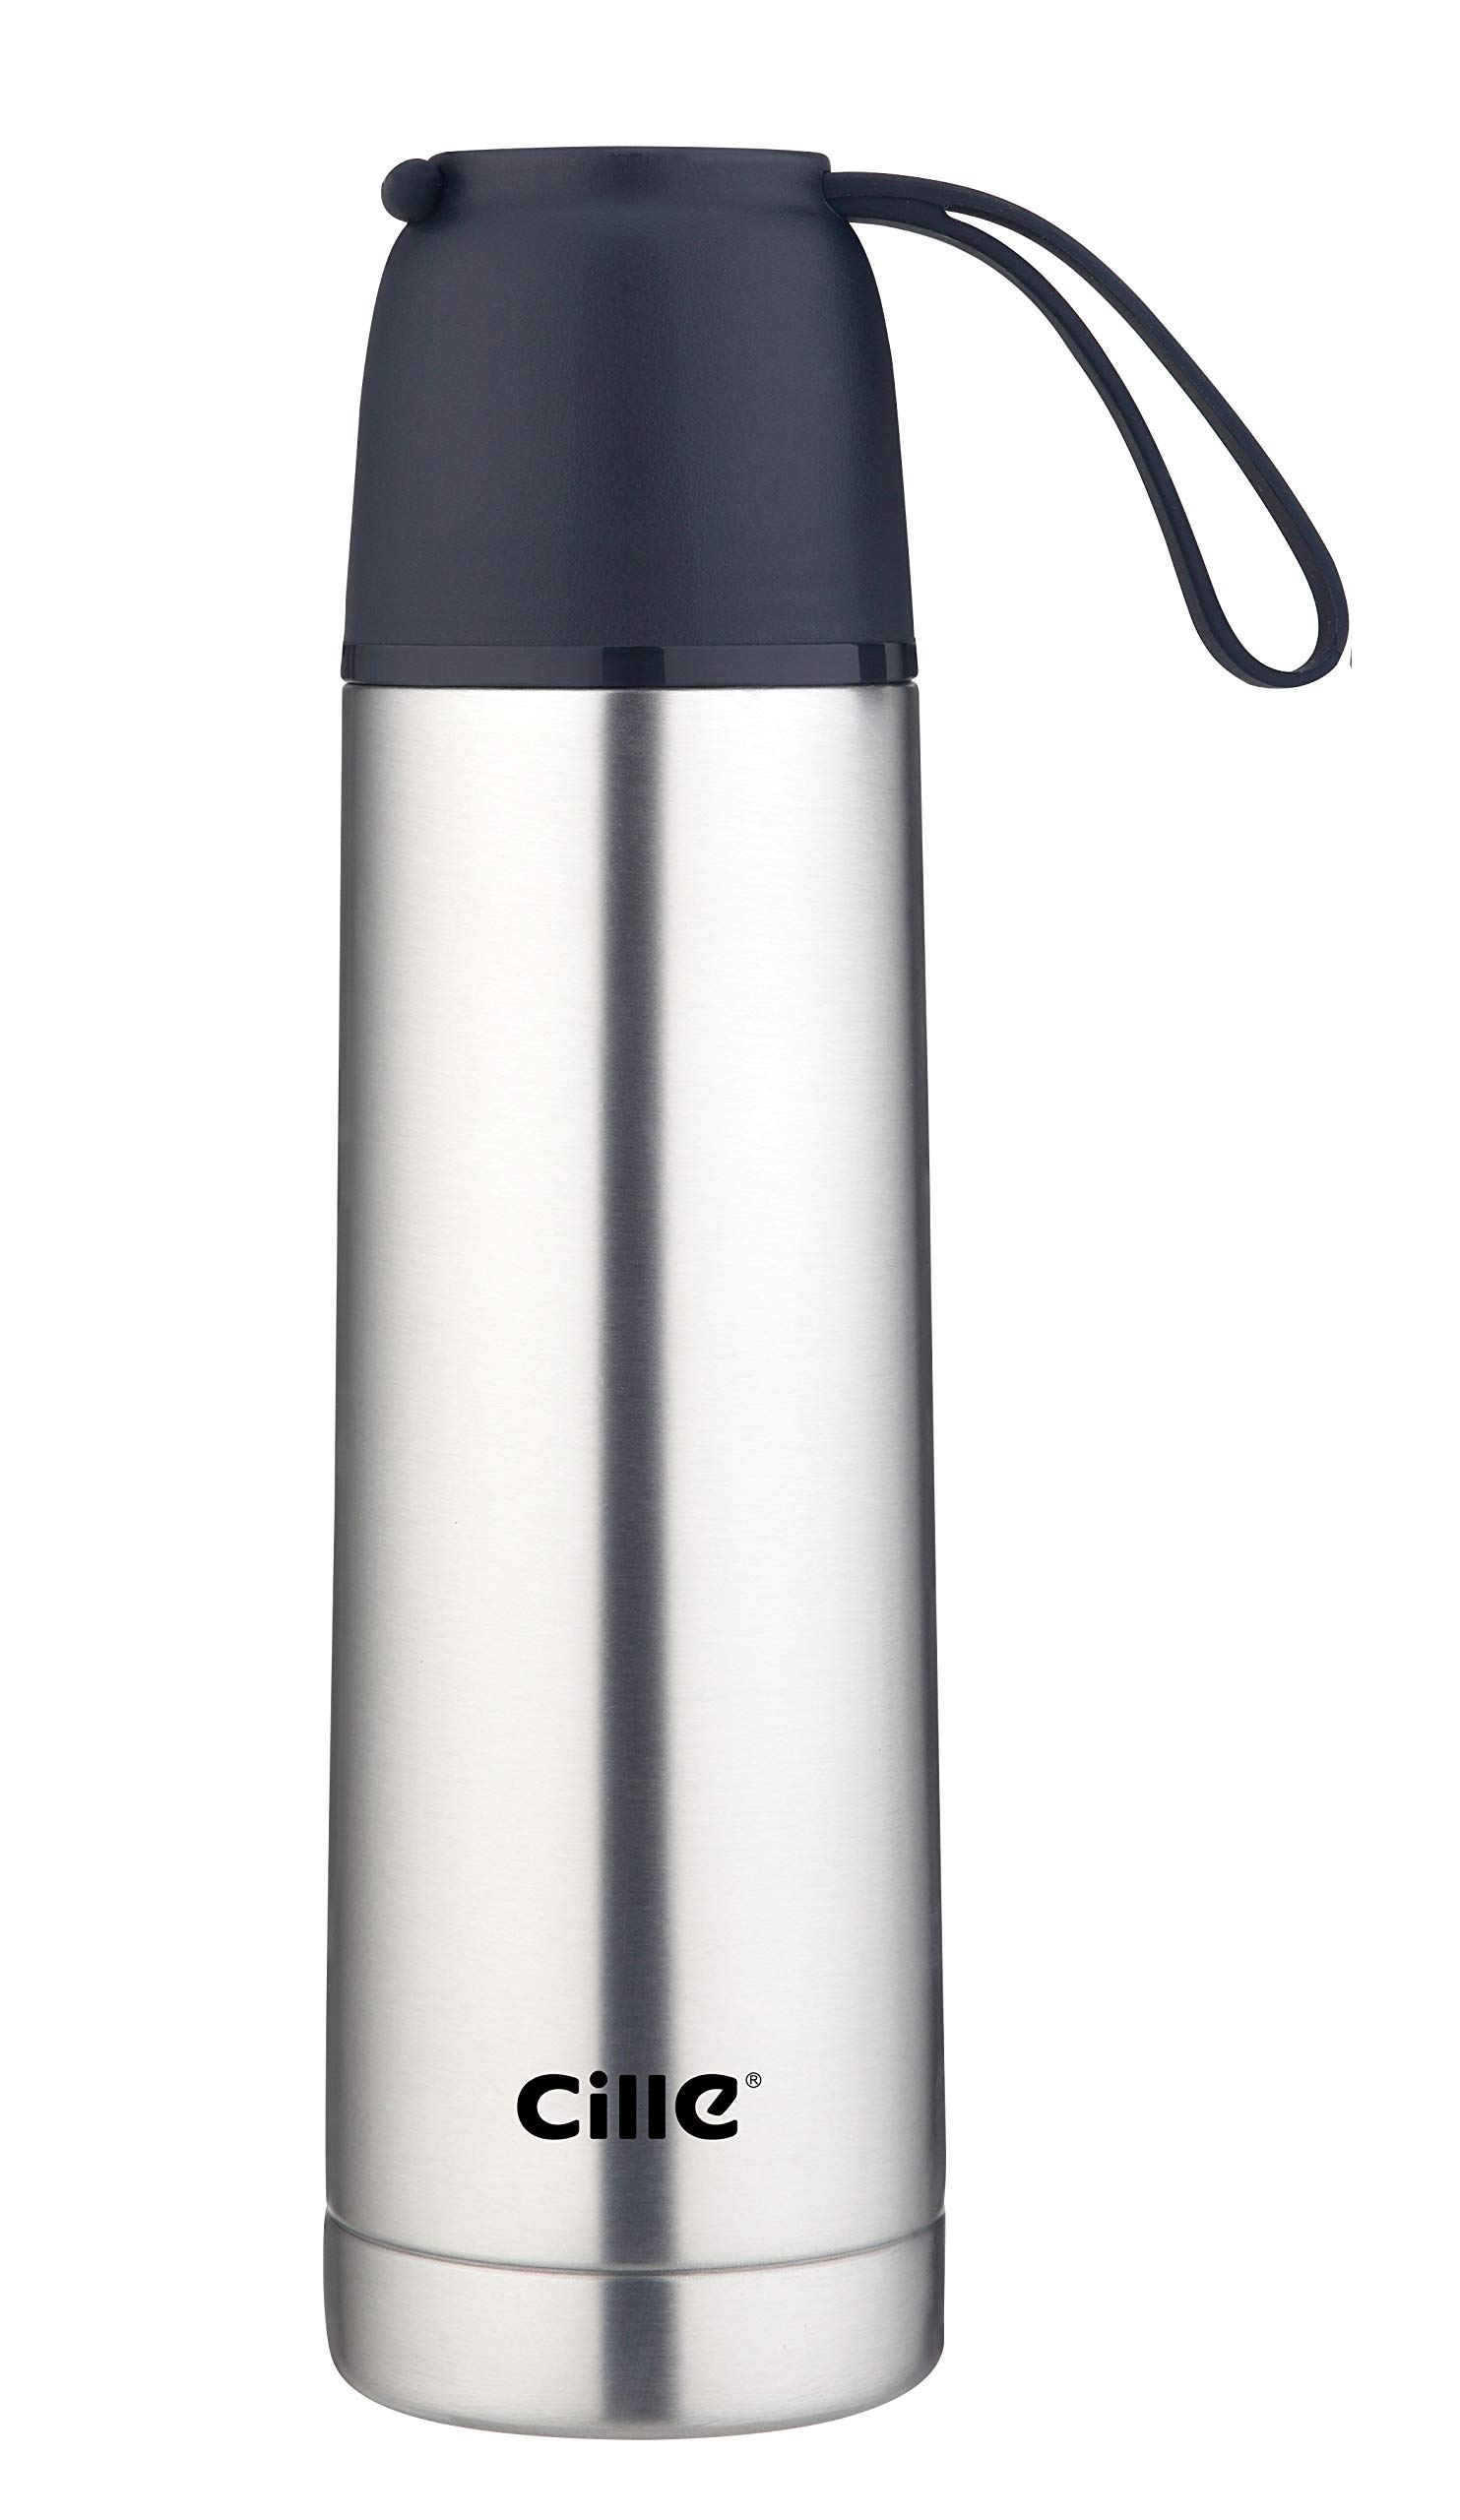 Cille Stainless Steel Vacuum Bottle (500ml/17oz) – Metal Double Wall Insulated Water Bottle For Cold Drinks & Hot Beverages